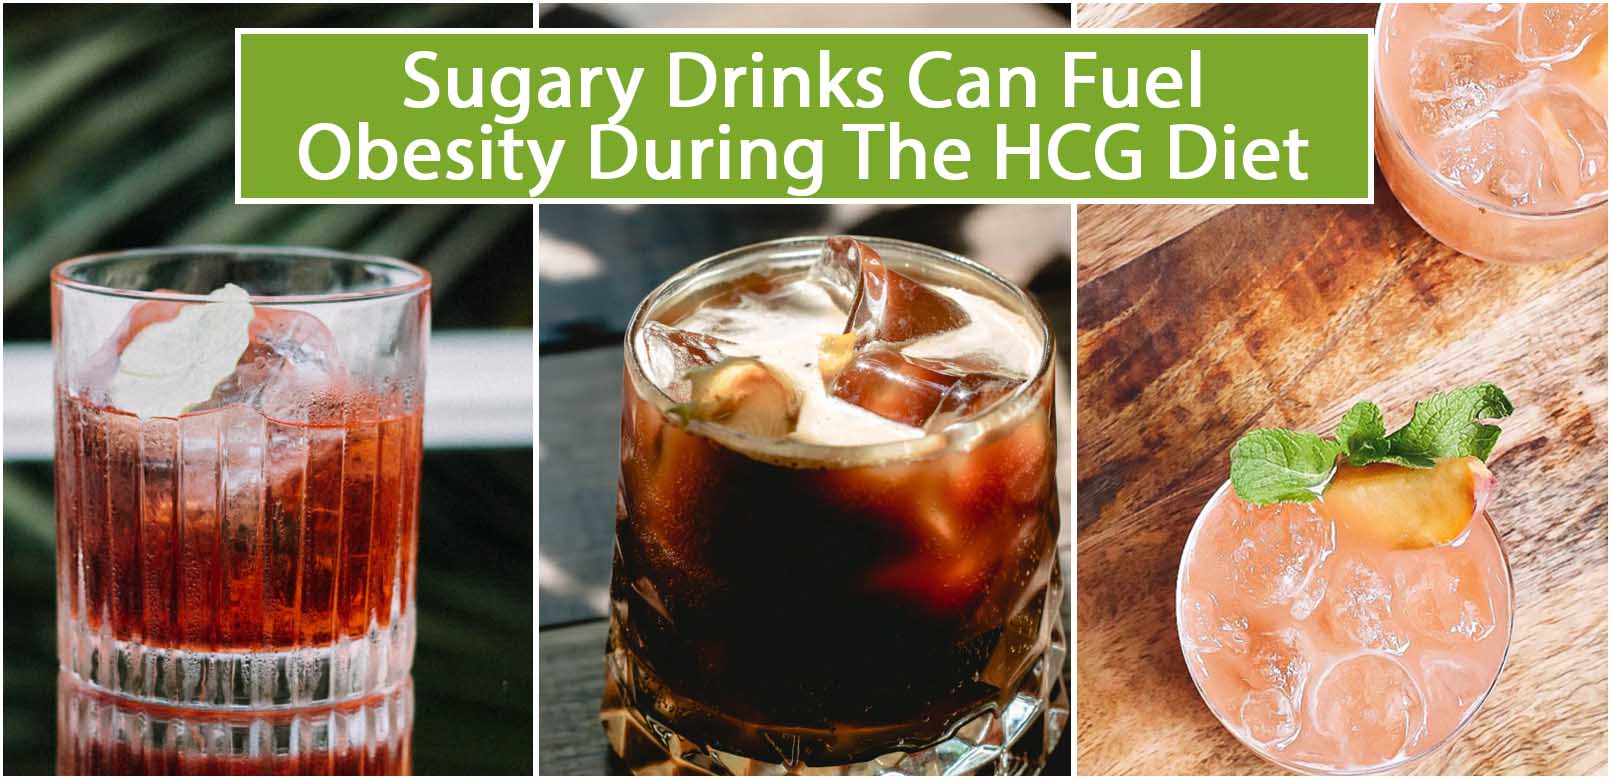 SUGARY DRINKS CAN FUEL OBESITY DURING THE HCG DIET